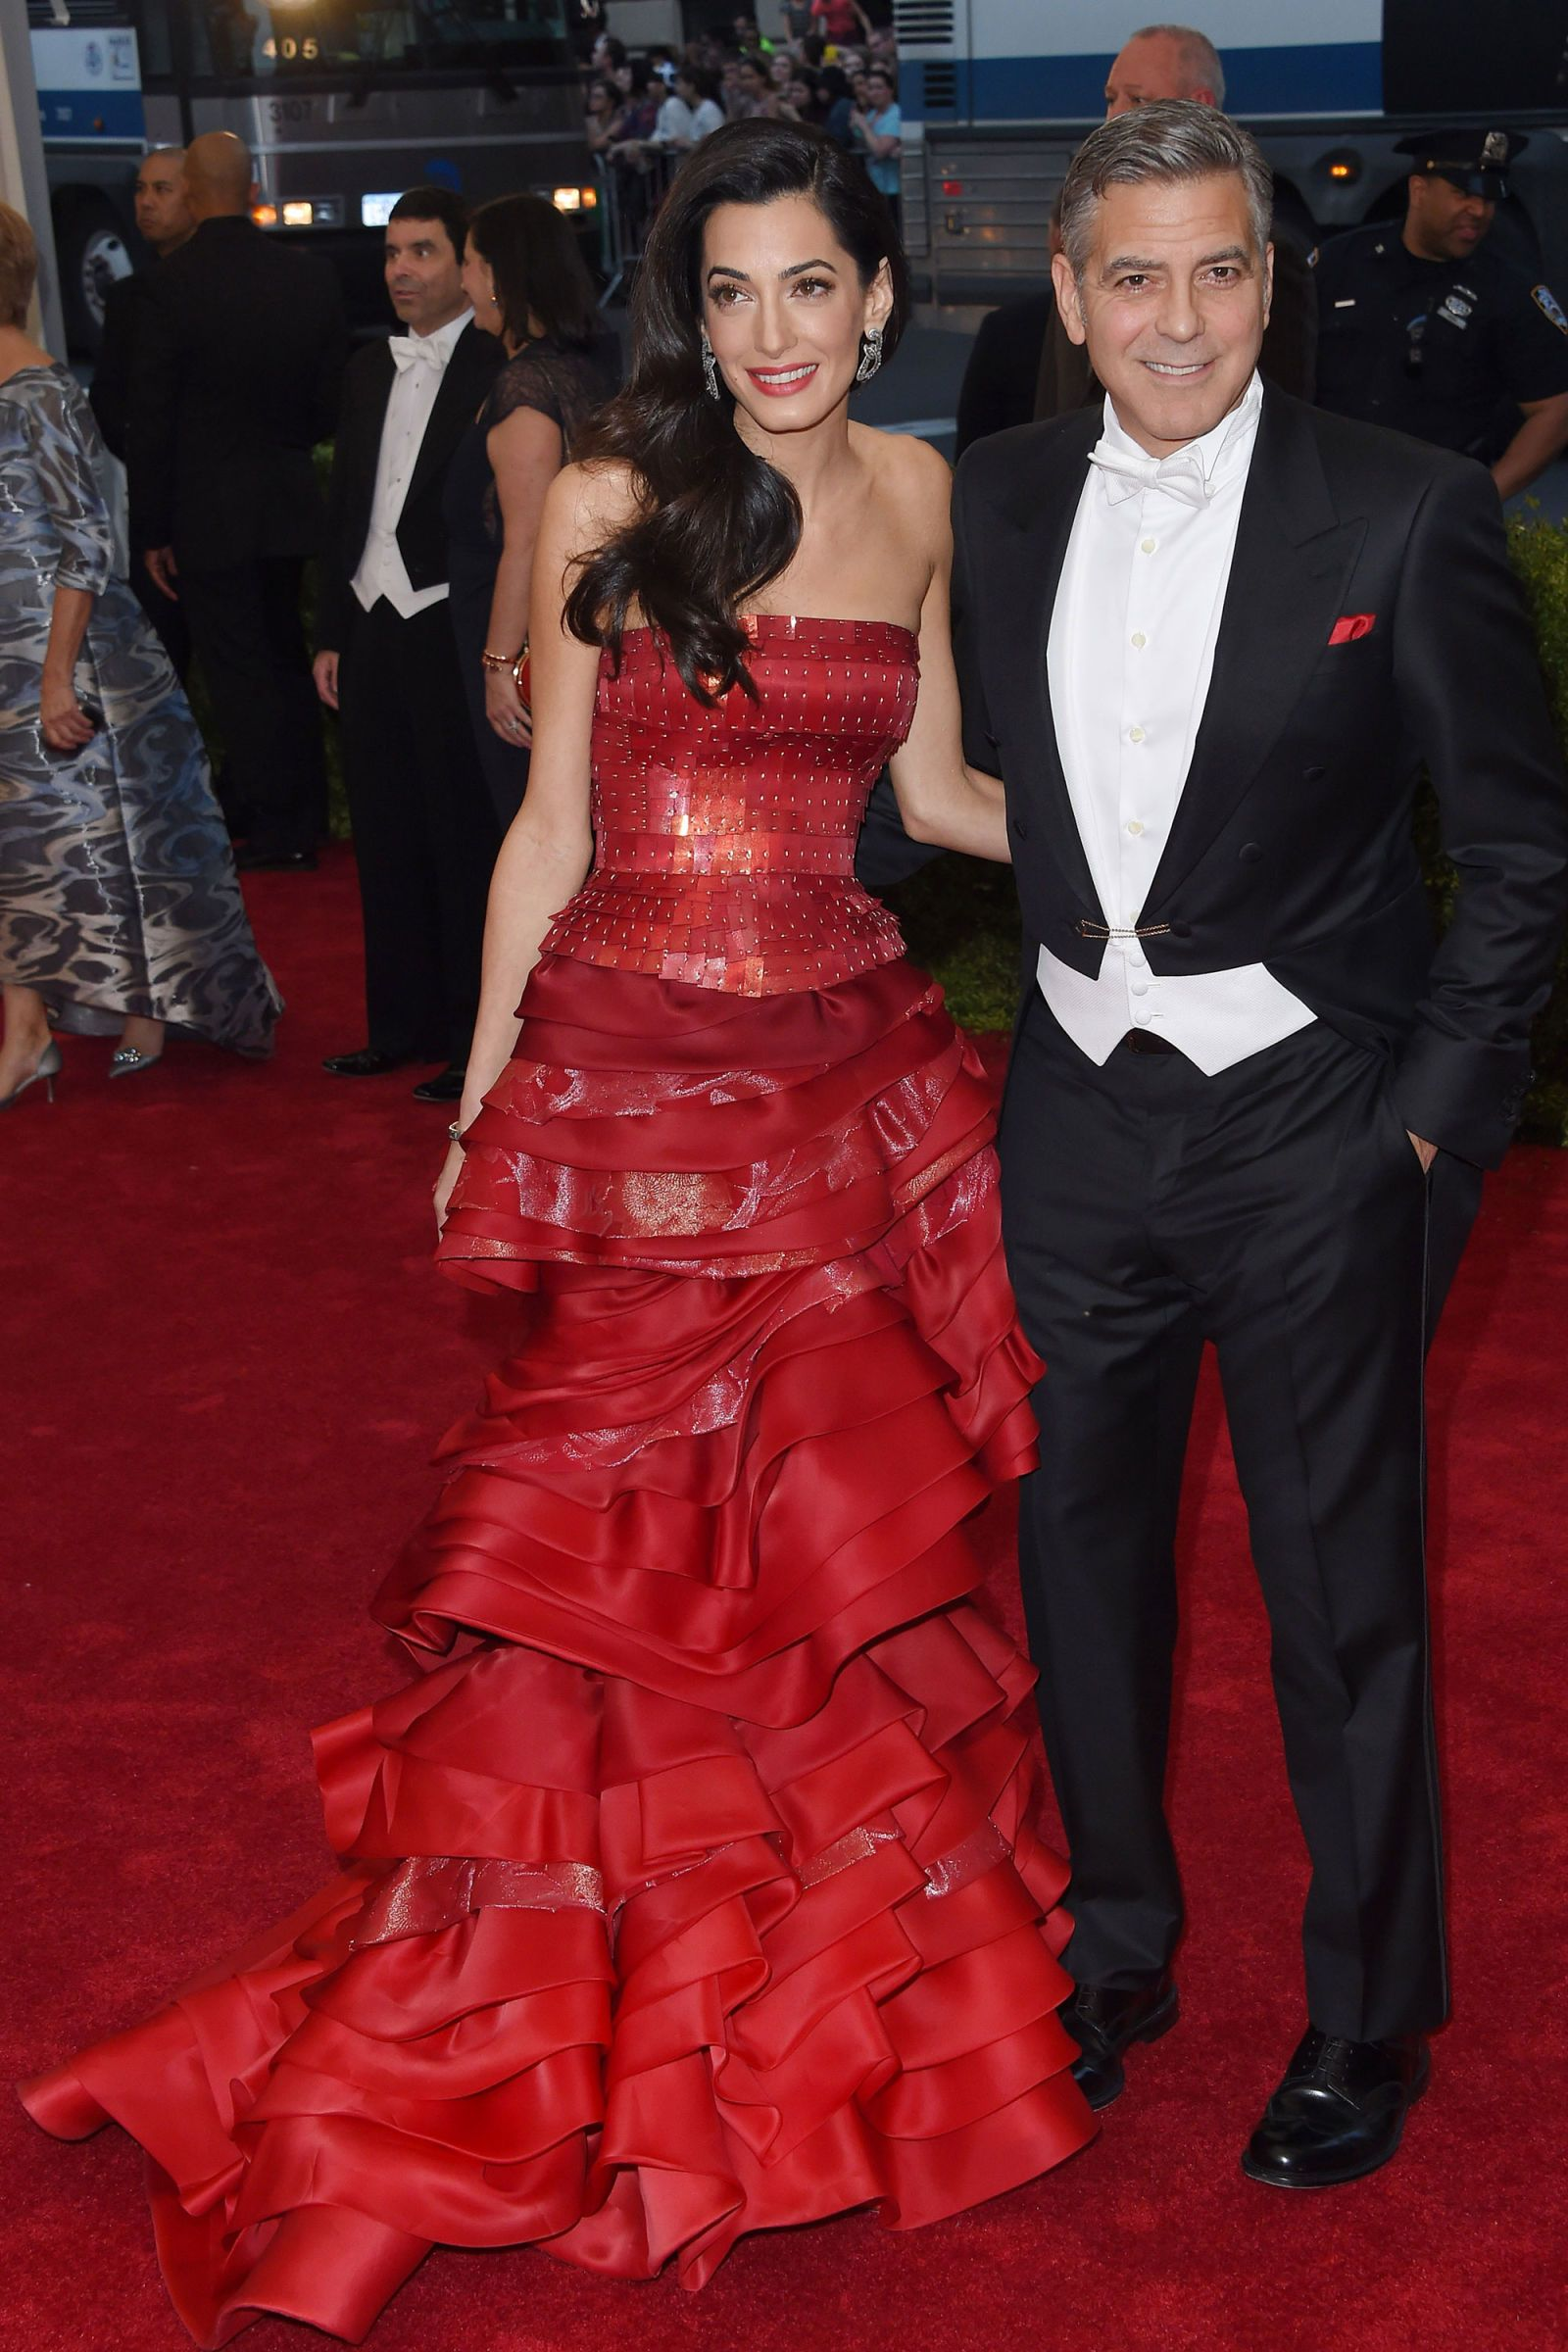 The best Met Ball dresses of all time